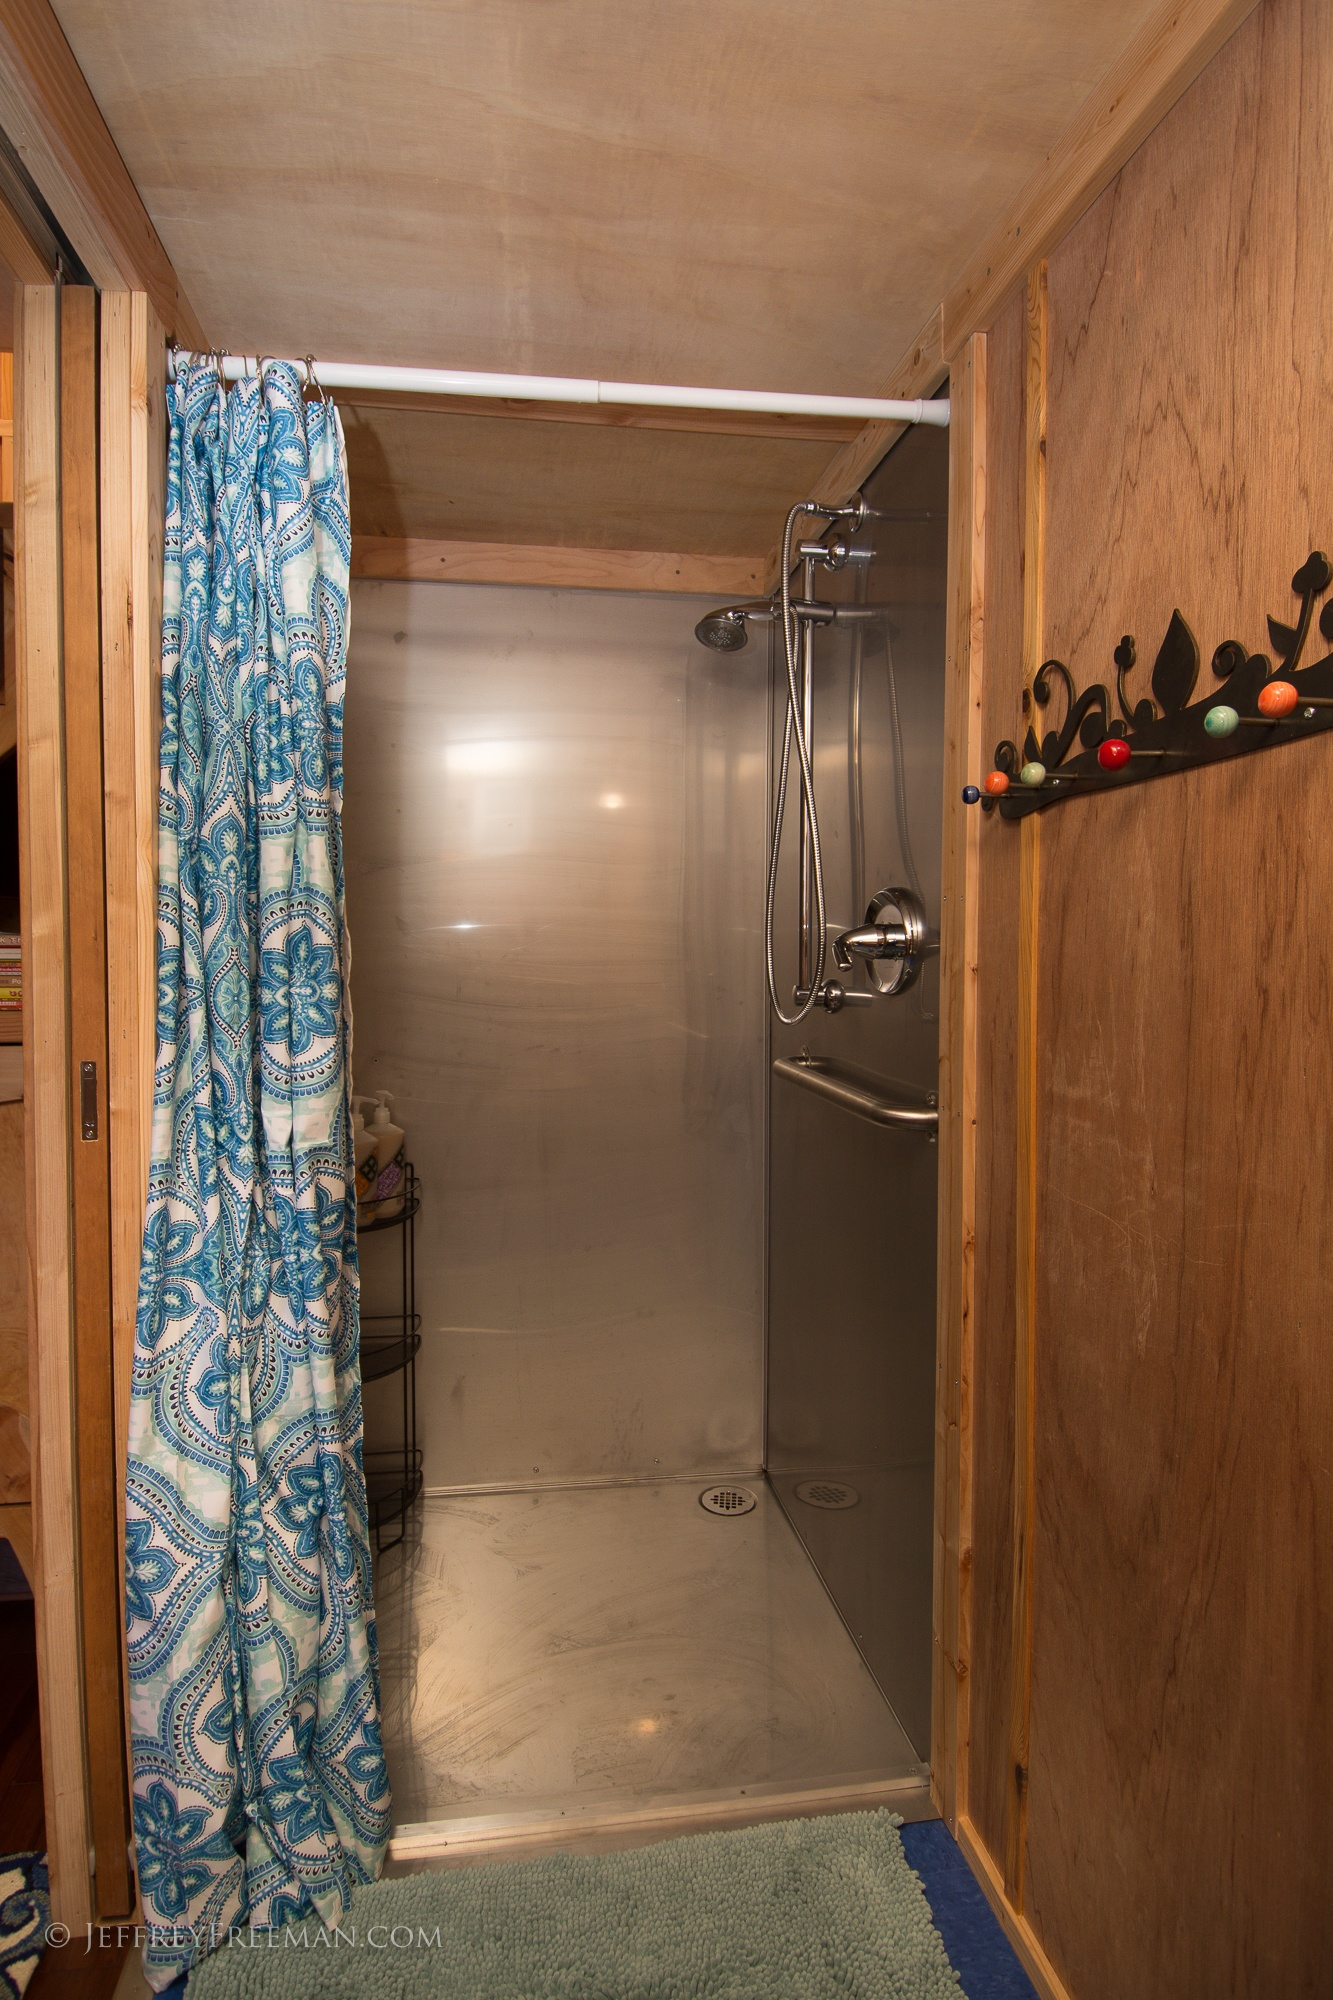 Shower - Pacifica by Zyl Vardos at the Tiny House Hotel